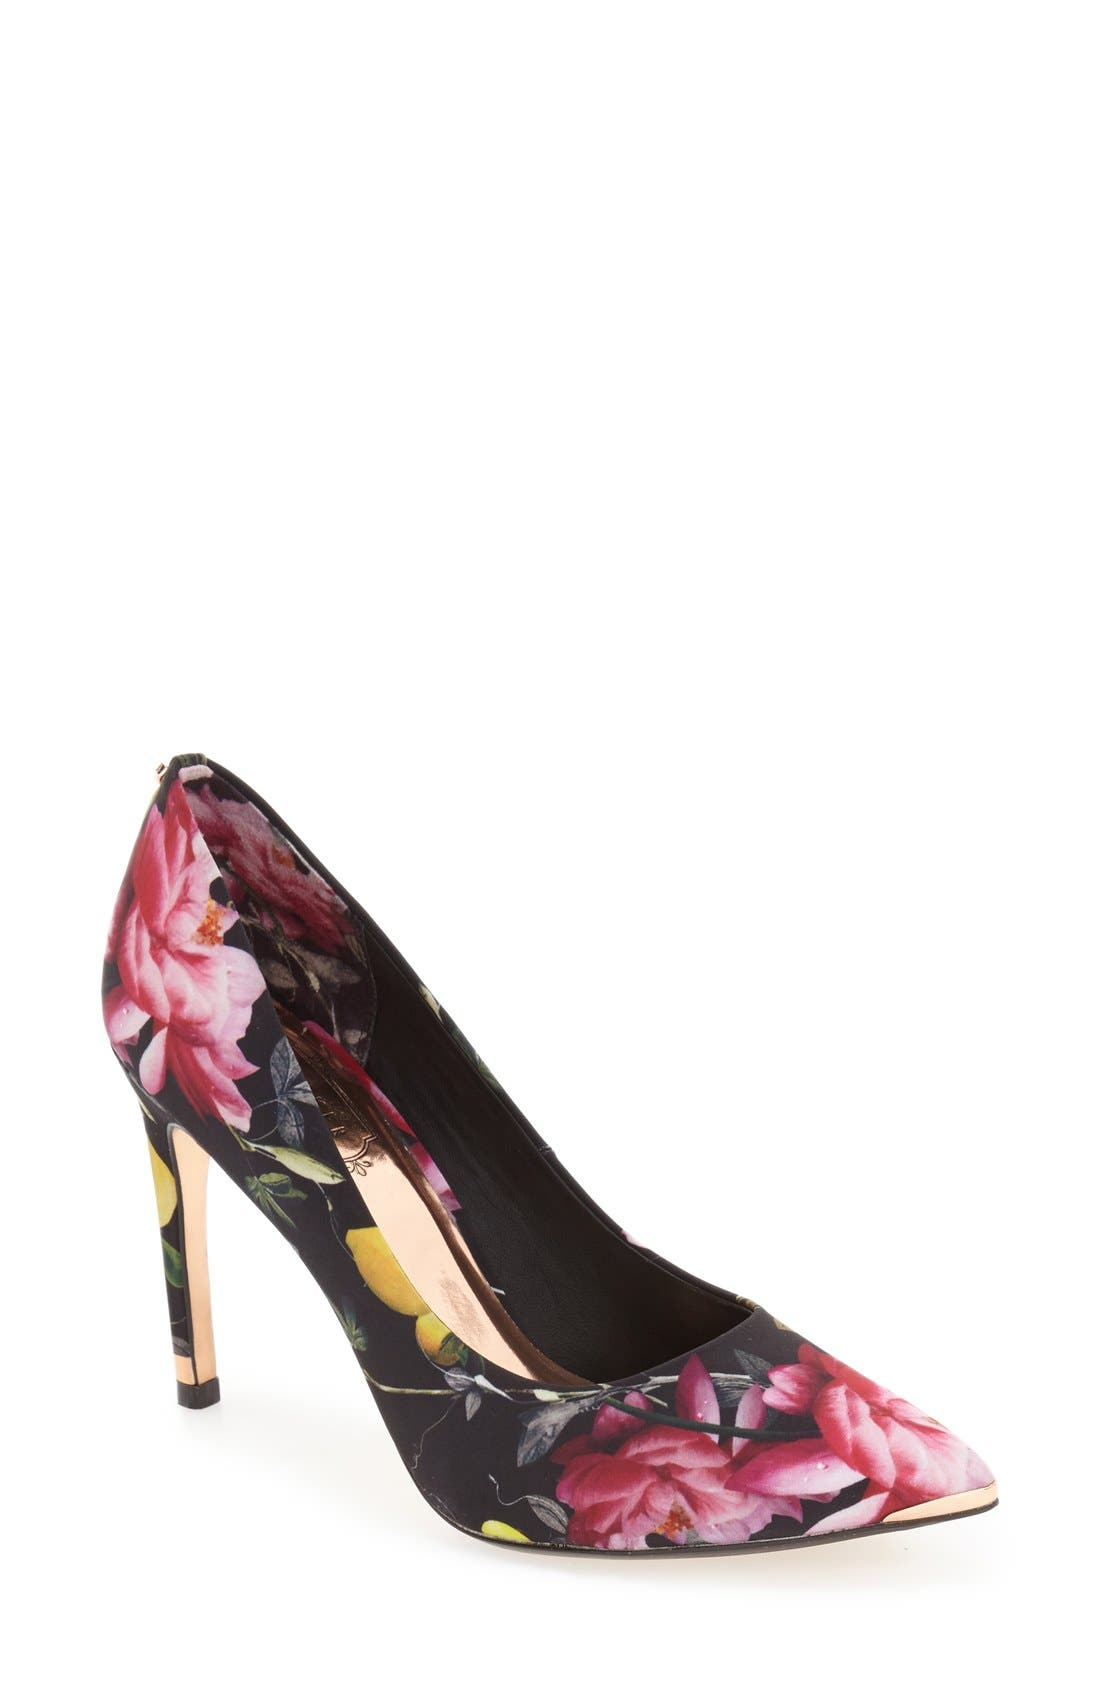 Alternate Image 1 Selected - Ted Baker London 'Neevo' Pointy Toe Pump (Women)